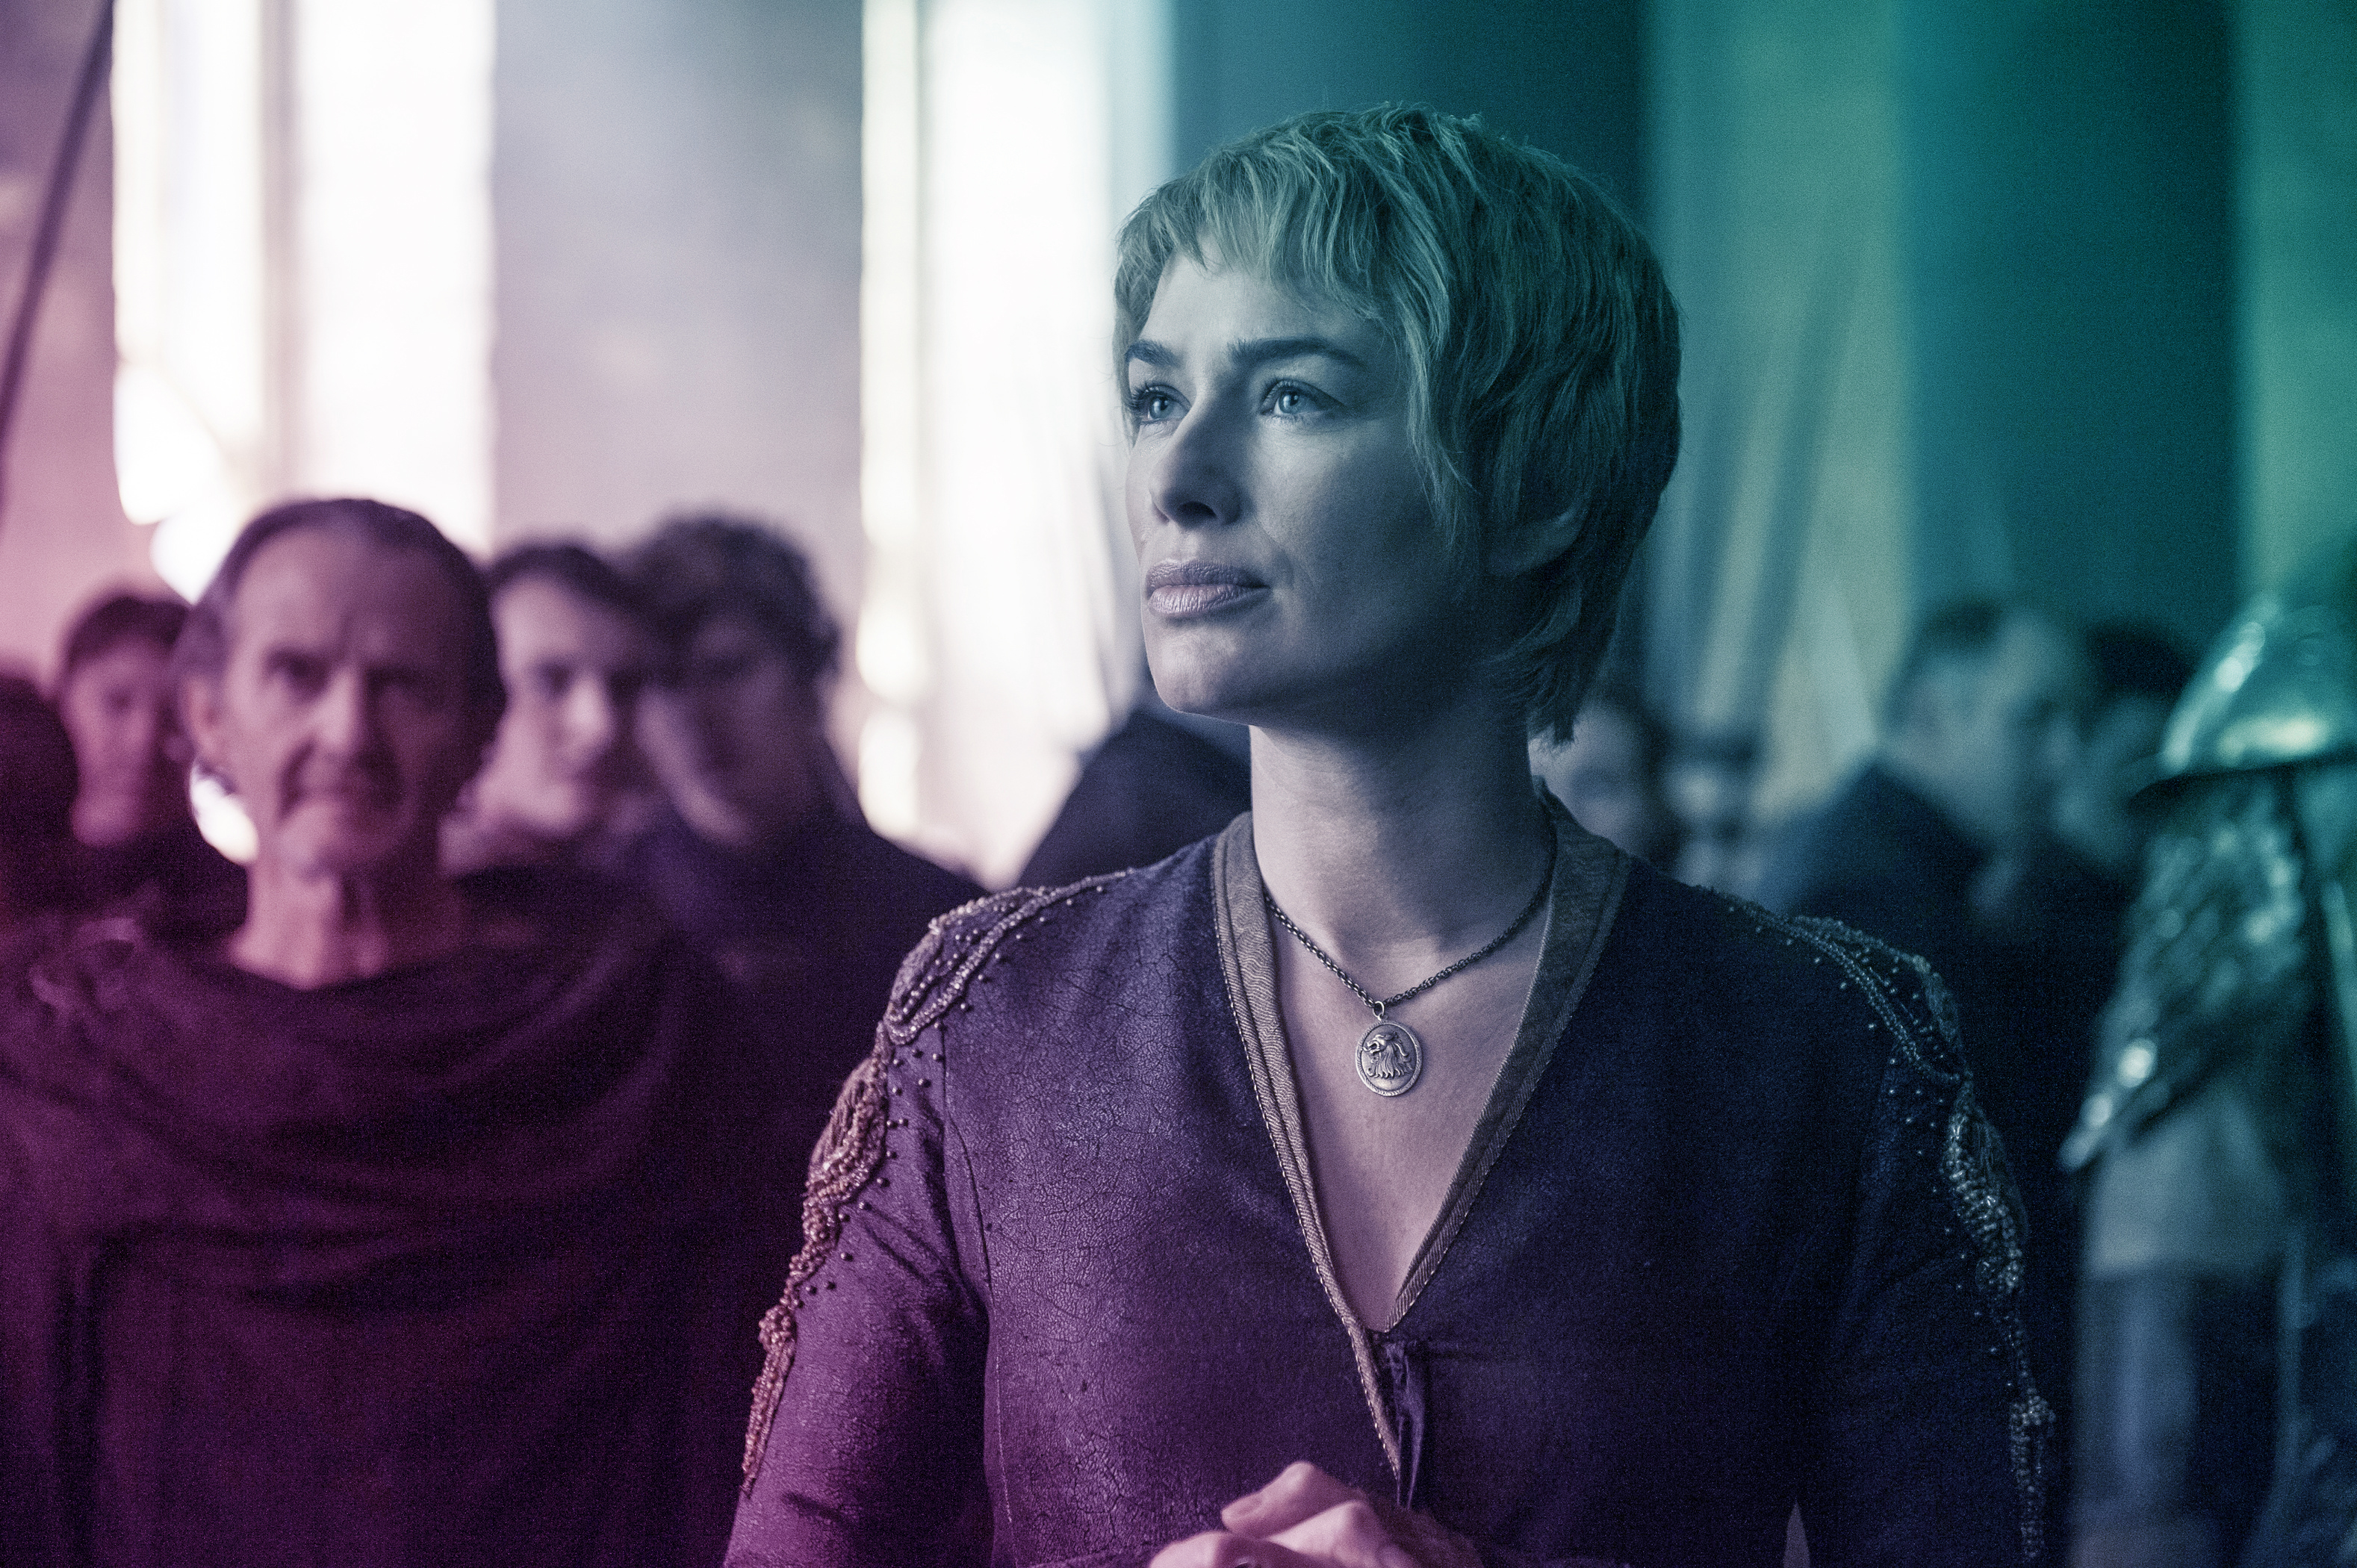 Game of Thrones' Season 4 Goes Off-Book to Add Gratuitous Rape - VICE